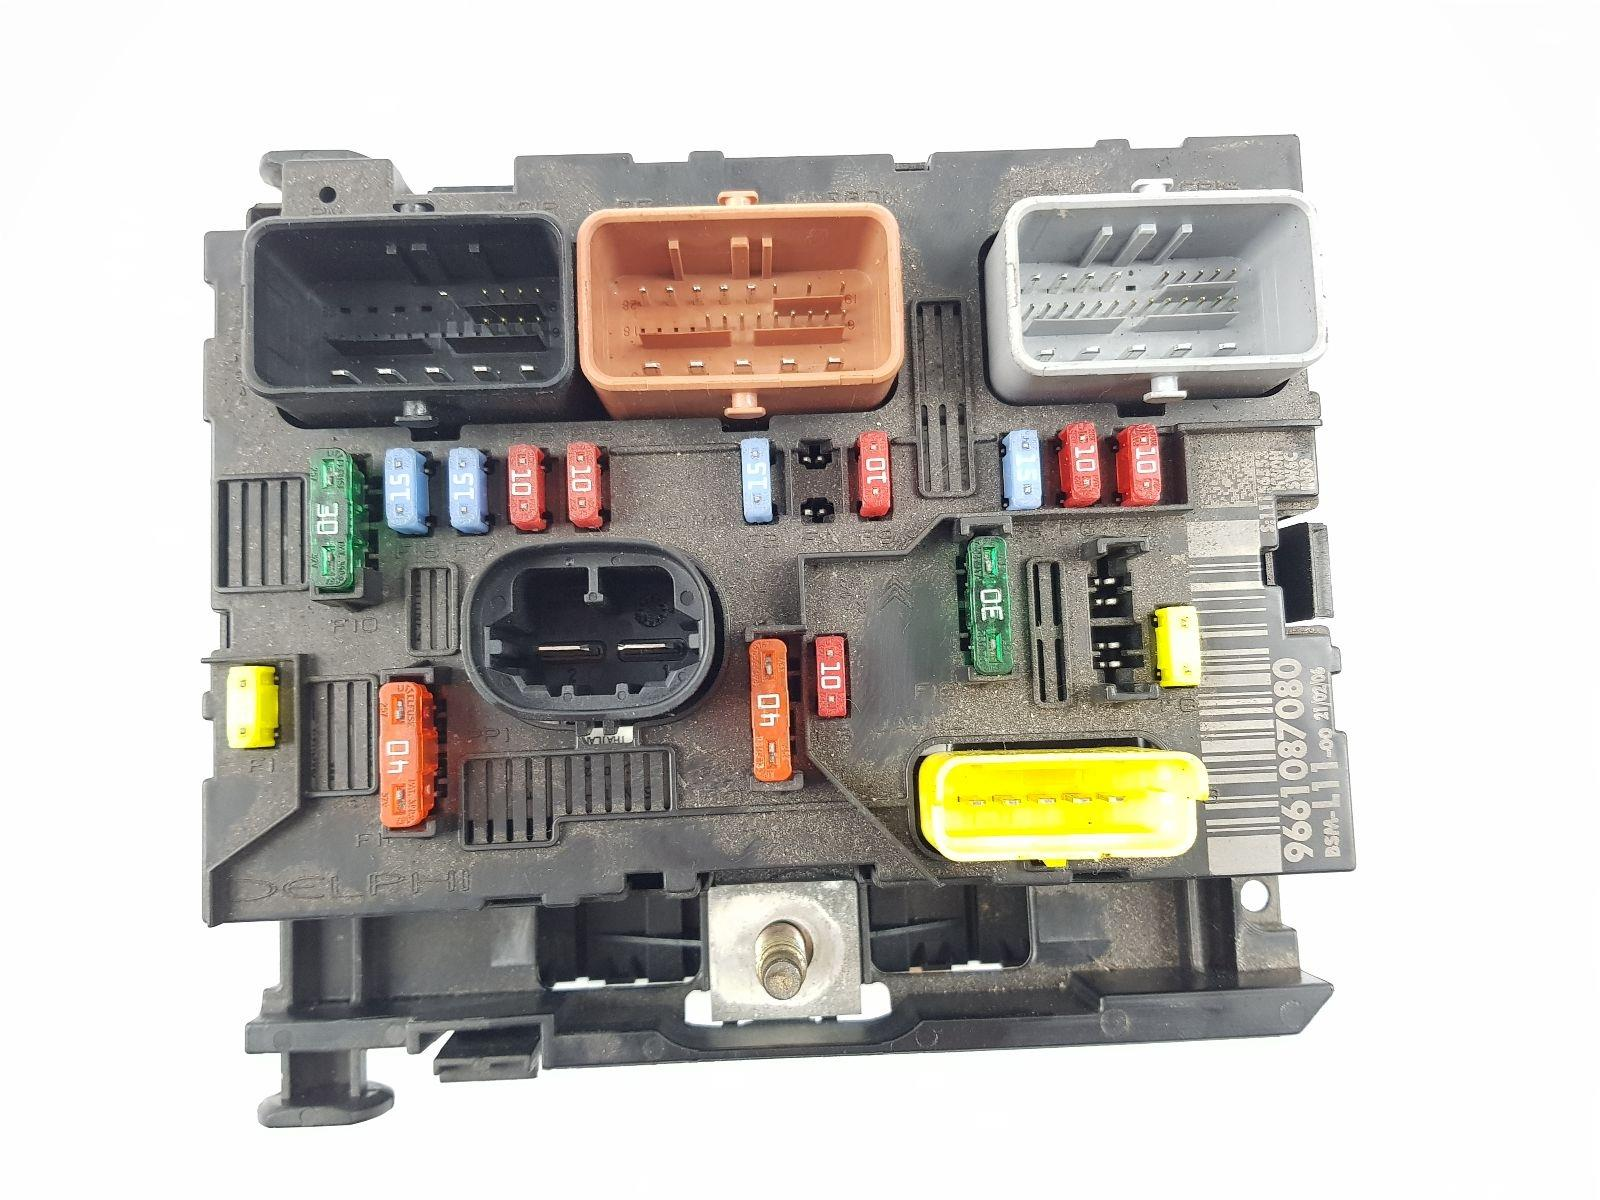 Peugeot 307 Fuse Box For Sale Trusted Wiring Diagram Online Manual Simple Diagrams Vw Eos 2005